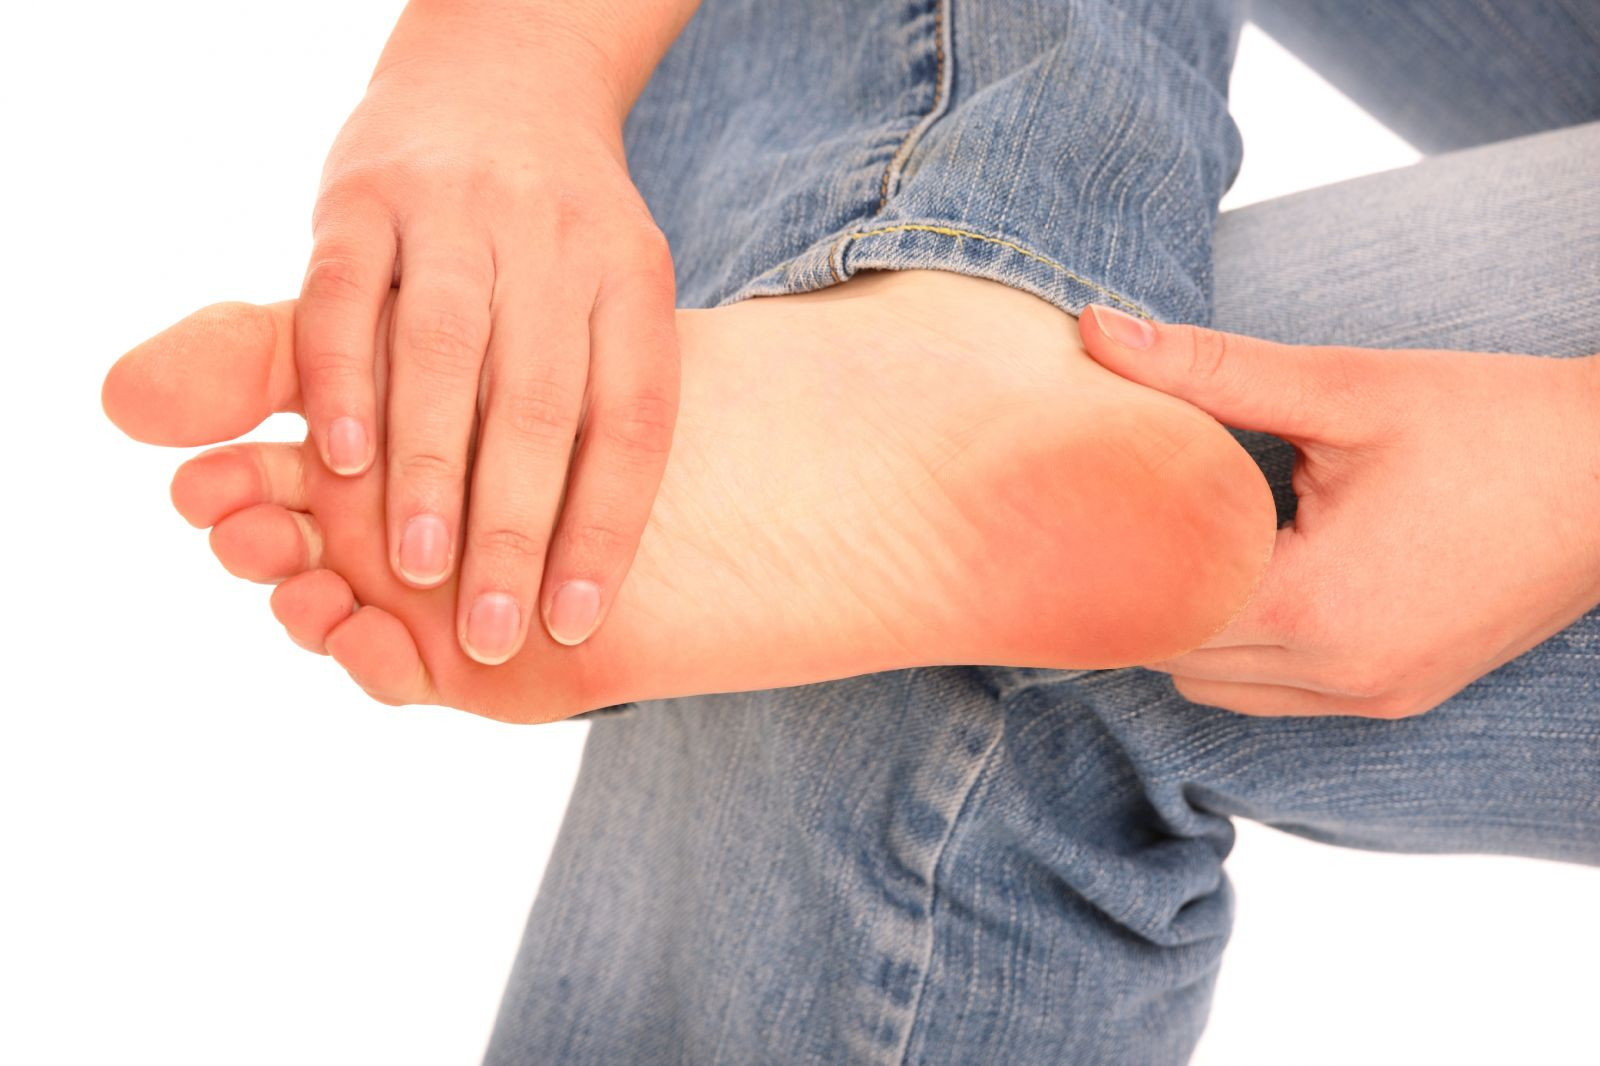 Calluses On Your Feet